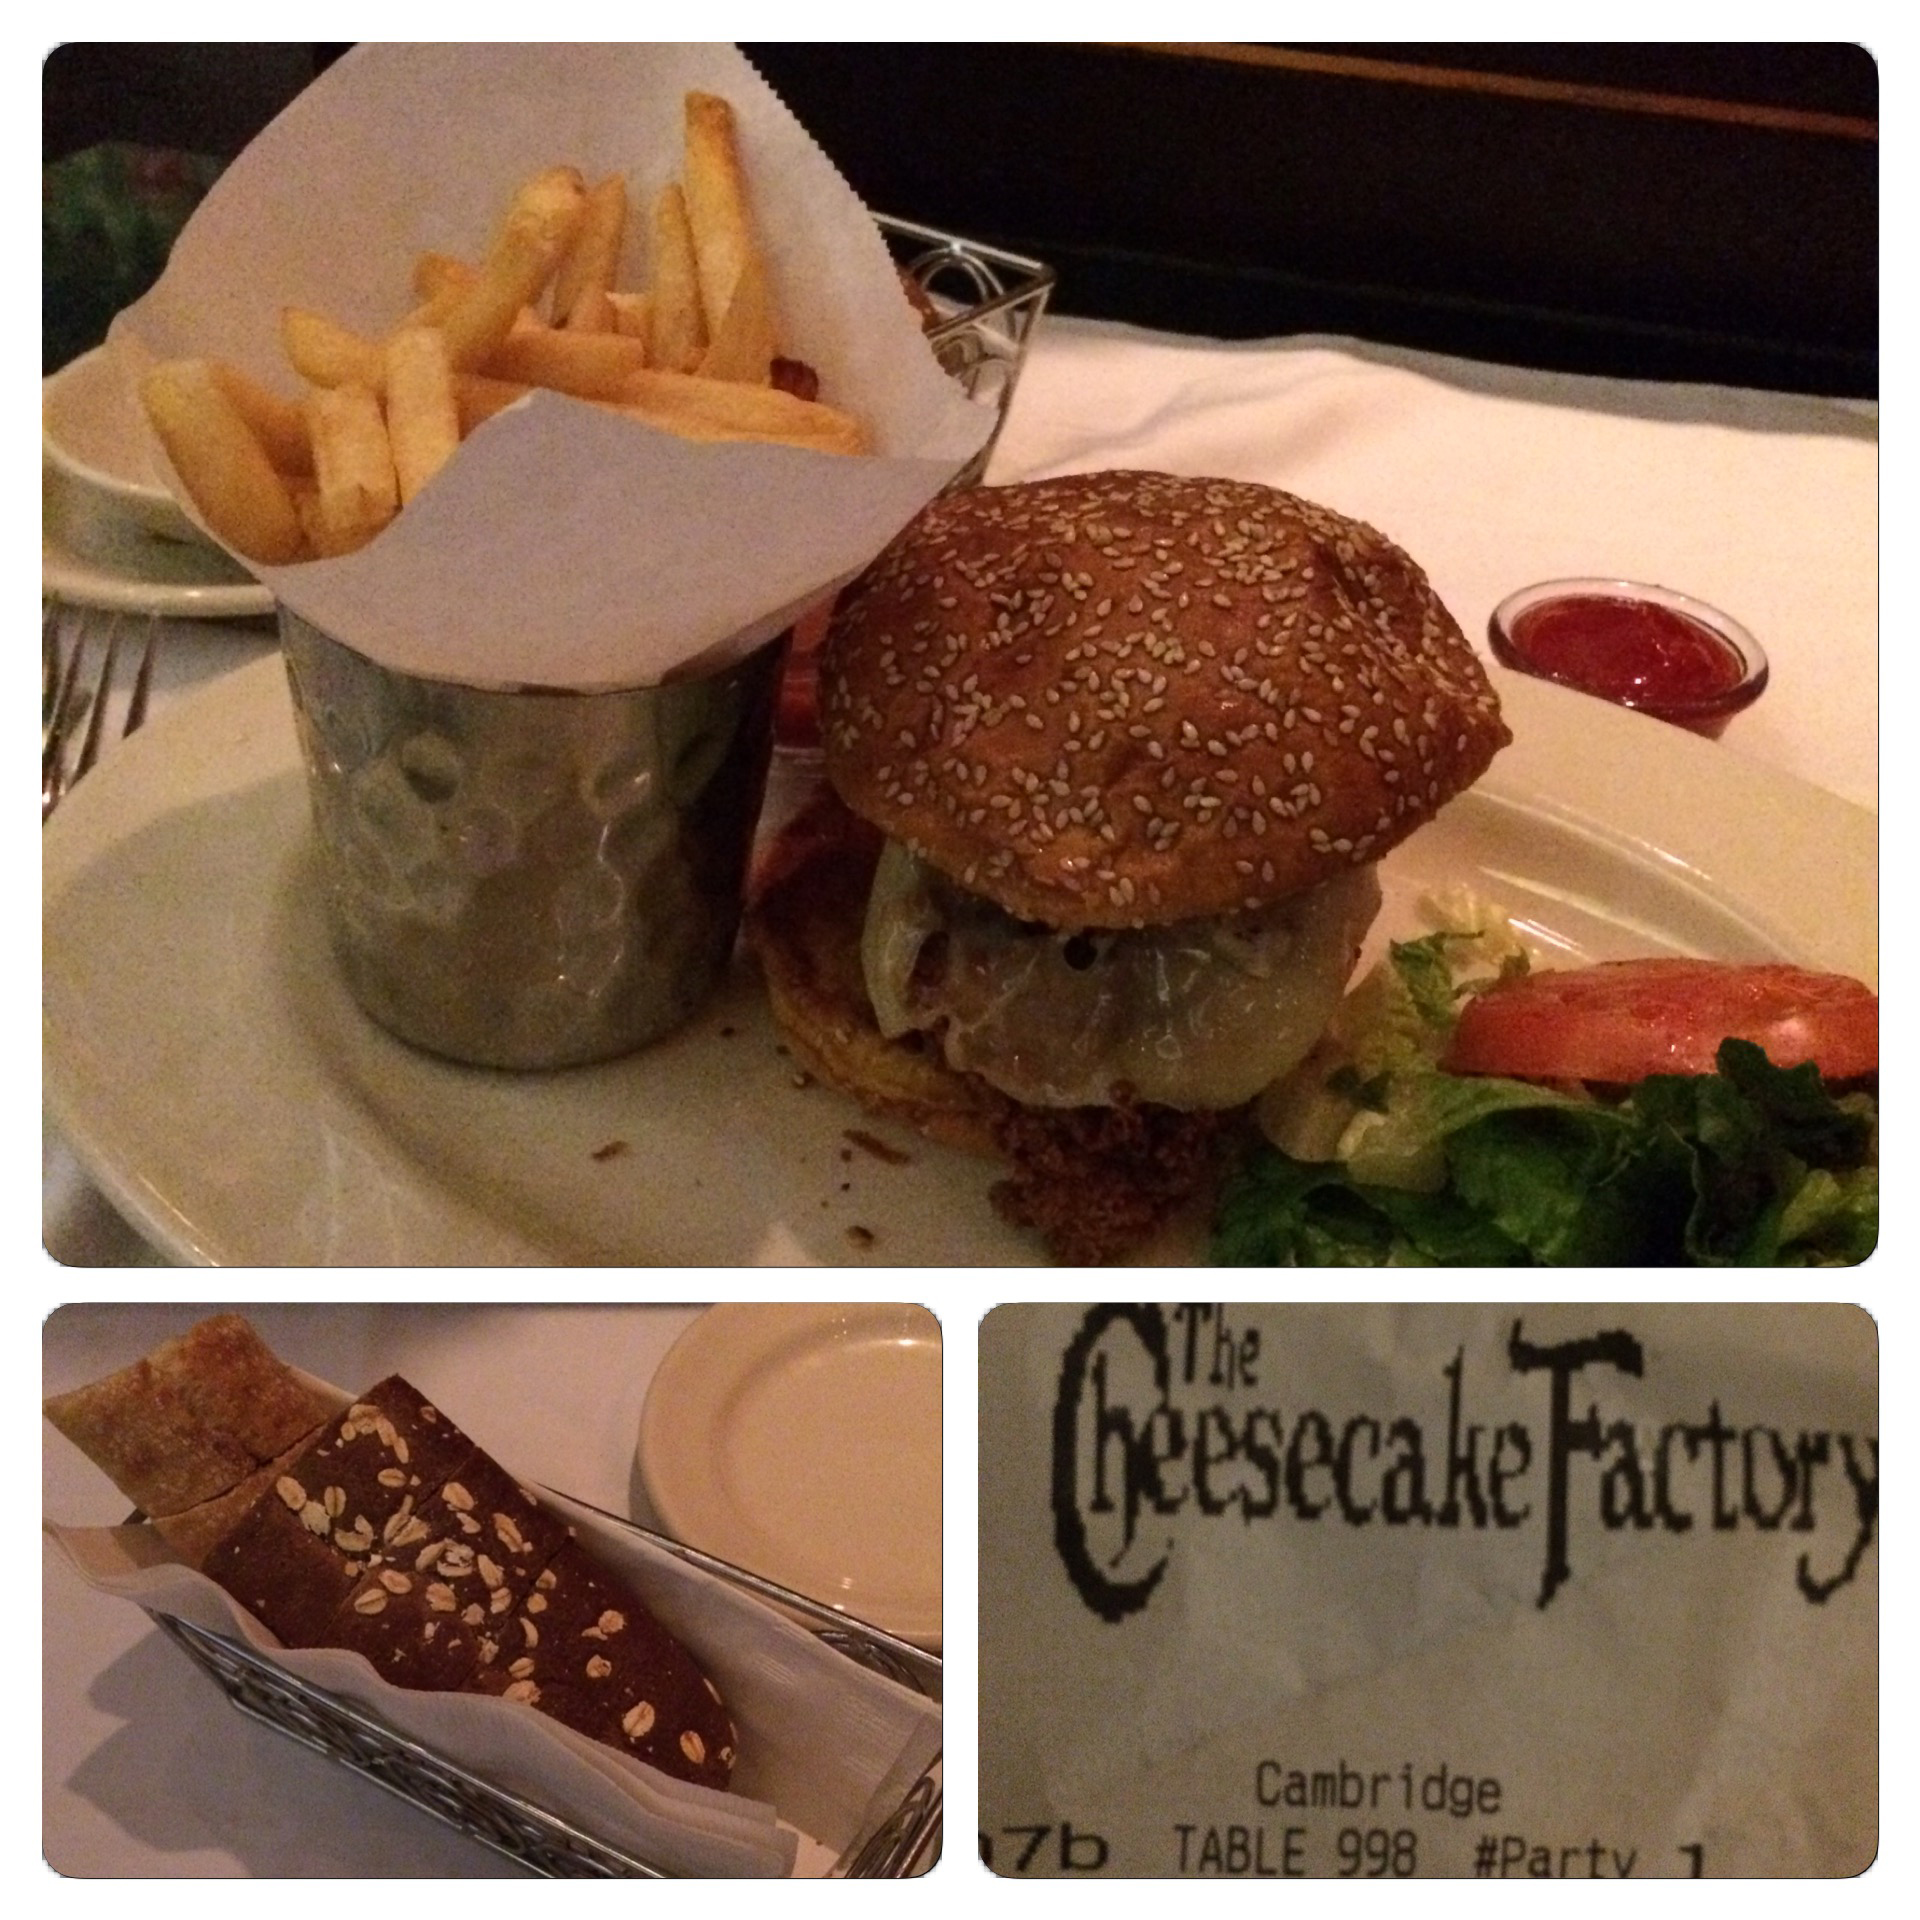 Earlier this month I ate at the Cheesecake Factory in Boston (it was my second time in my lifetime eating at that location). I ordered the spicy chicken sandwich.